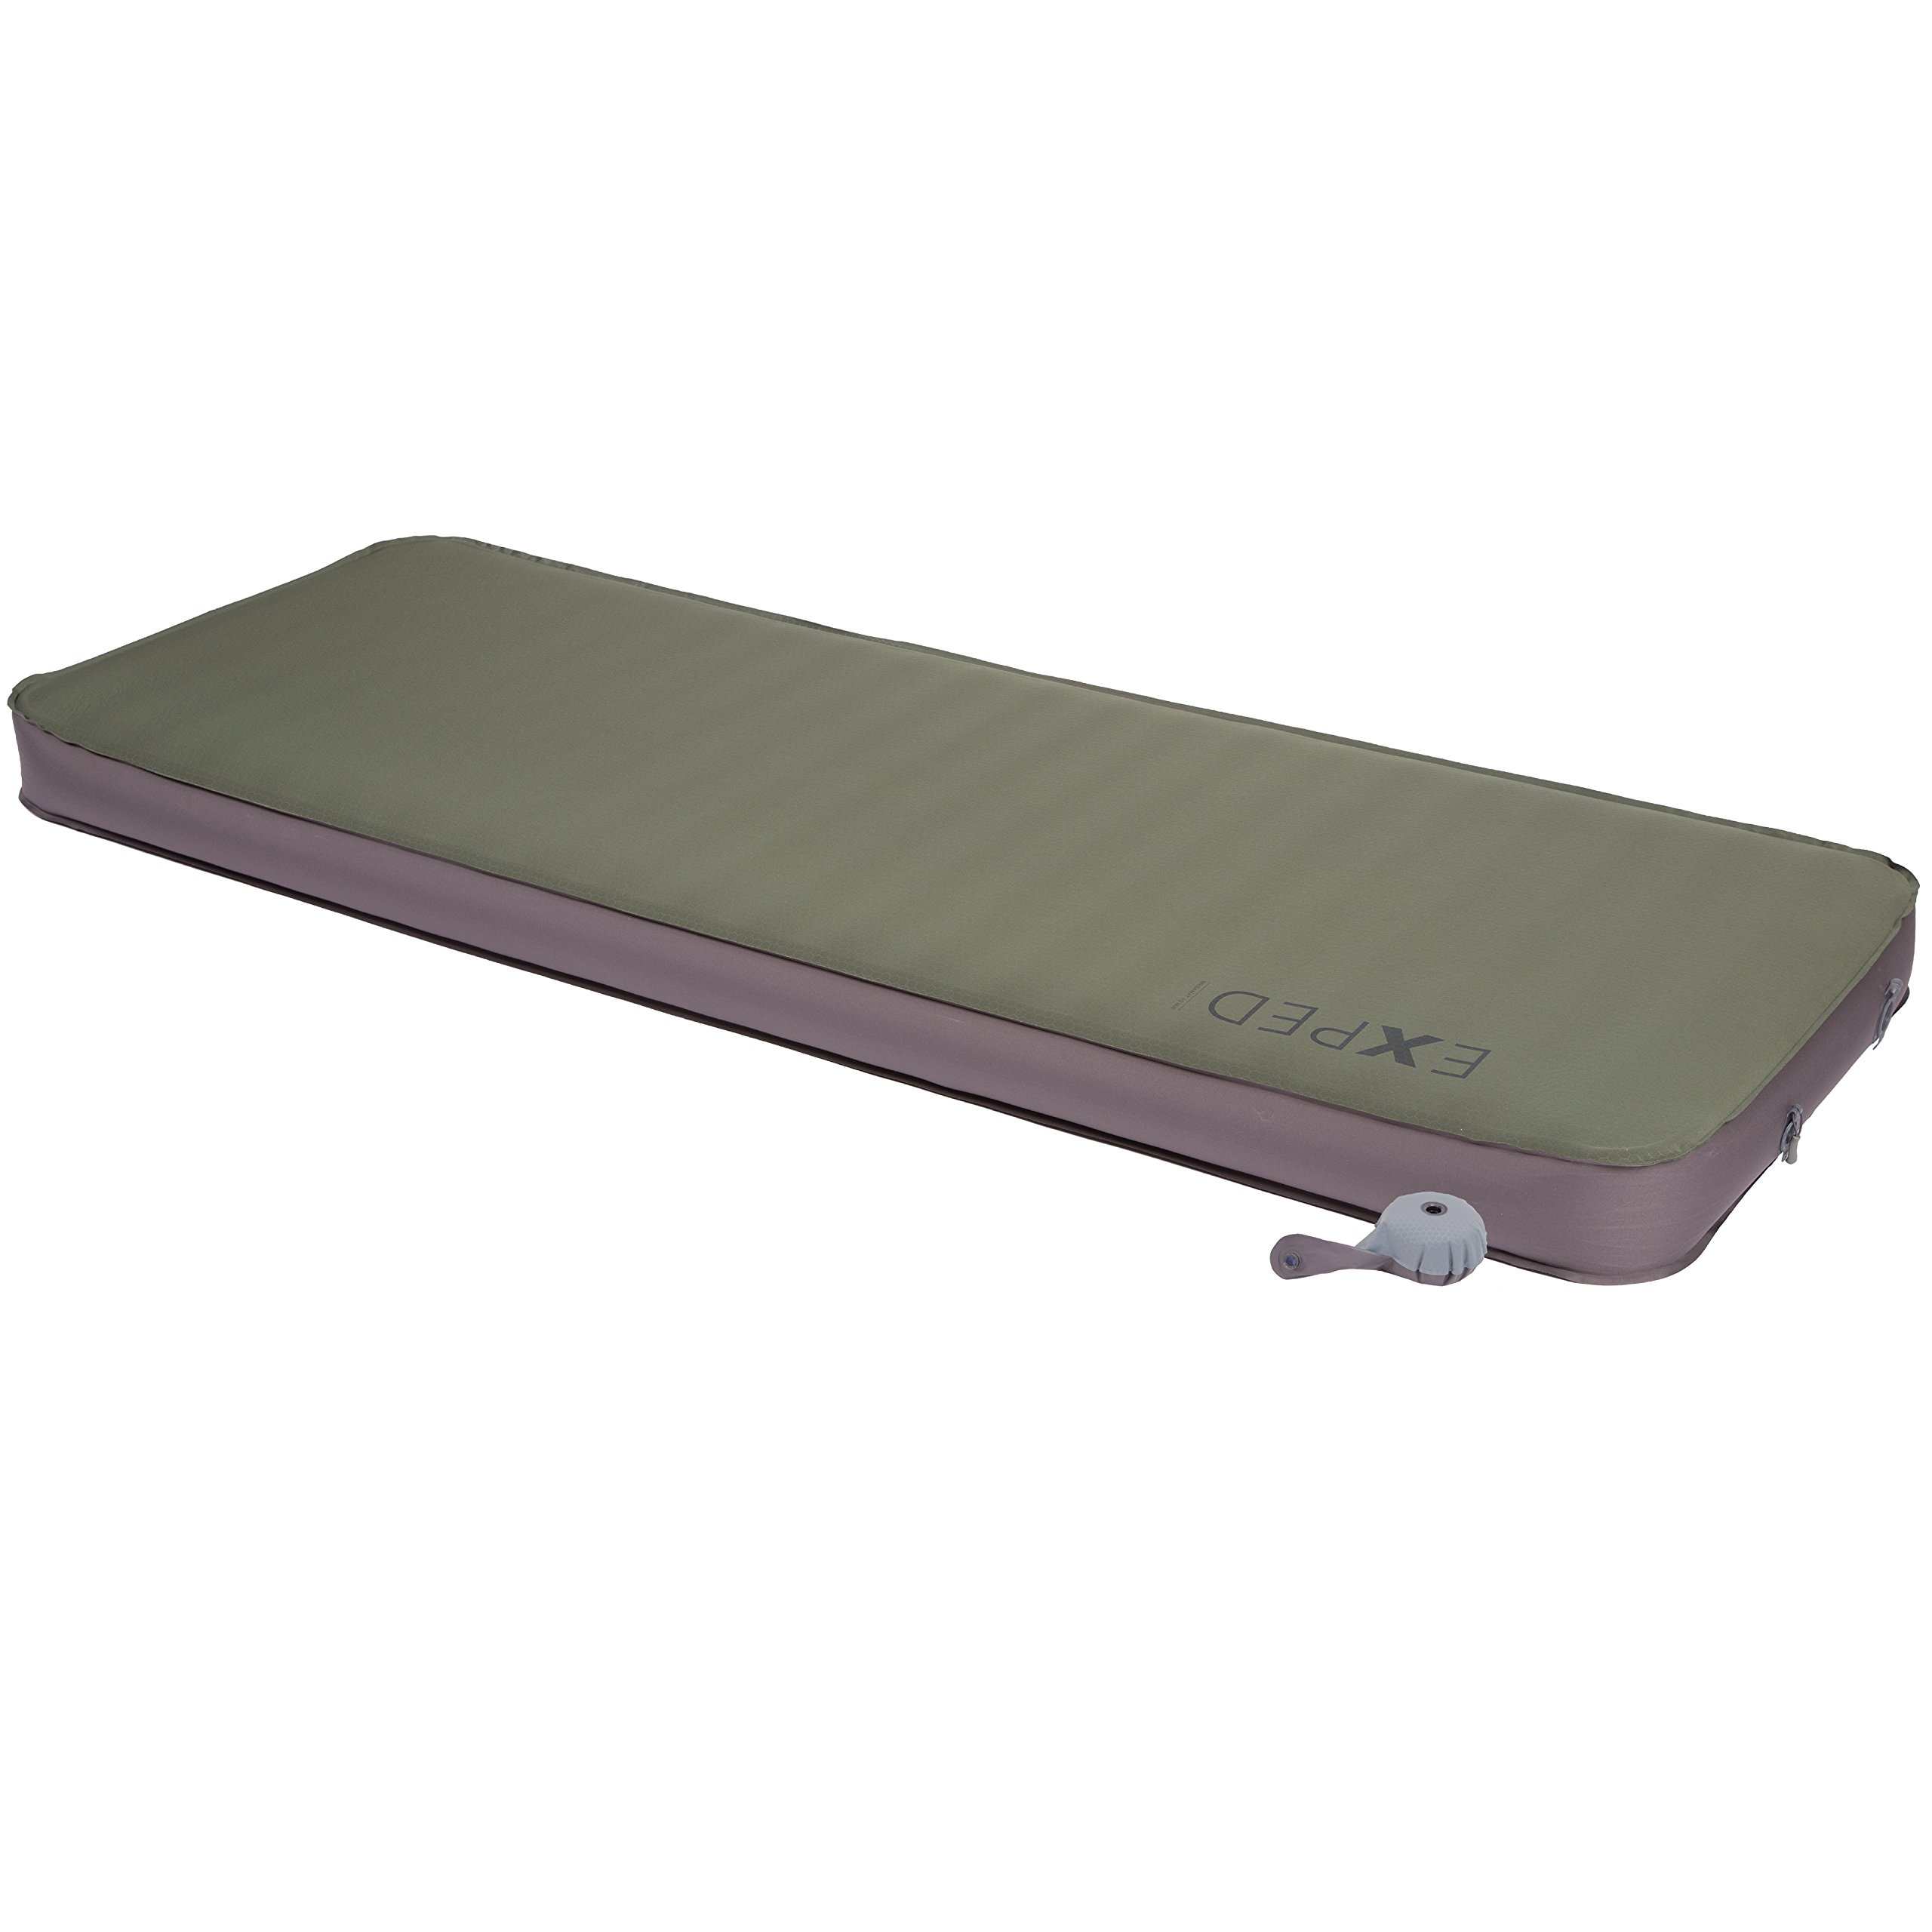 Exped Megamat 10 Insulated Self-Inflating Sleeping Pad, Green, Long Wide by Exped